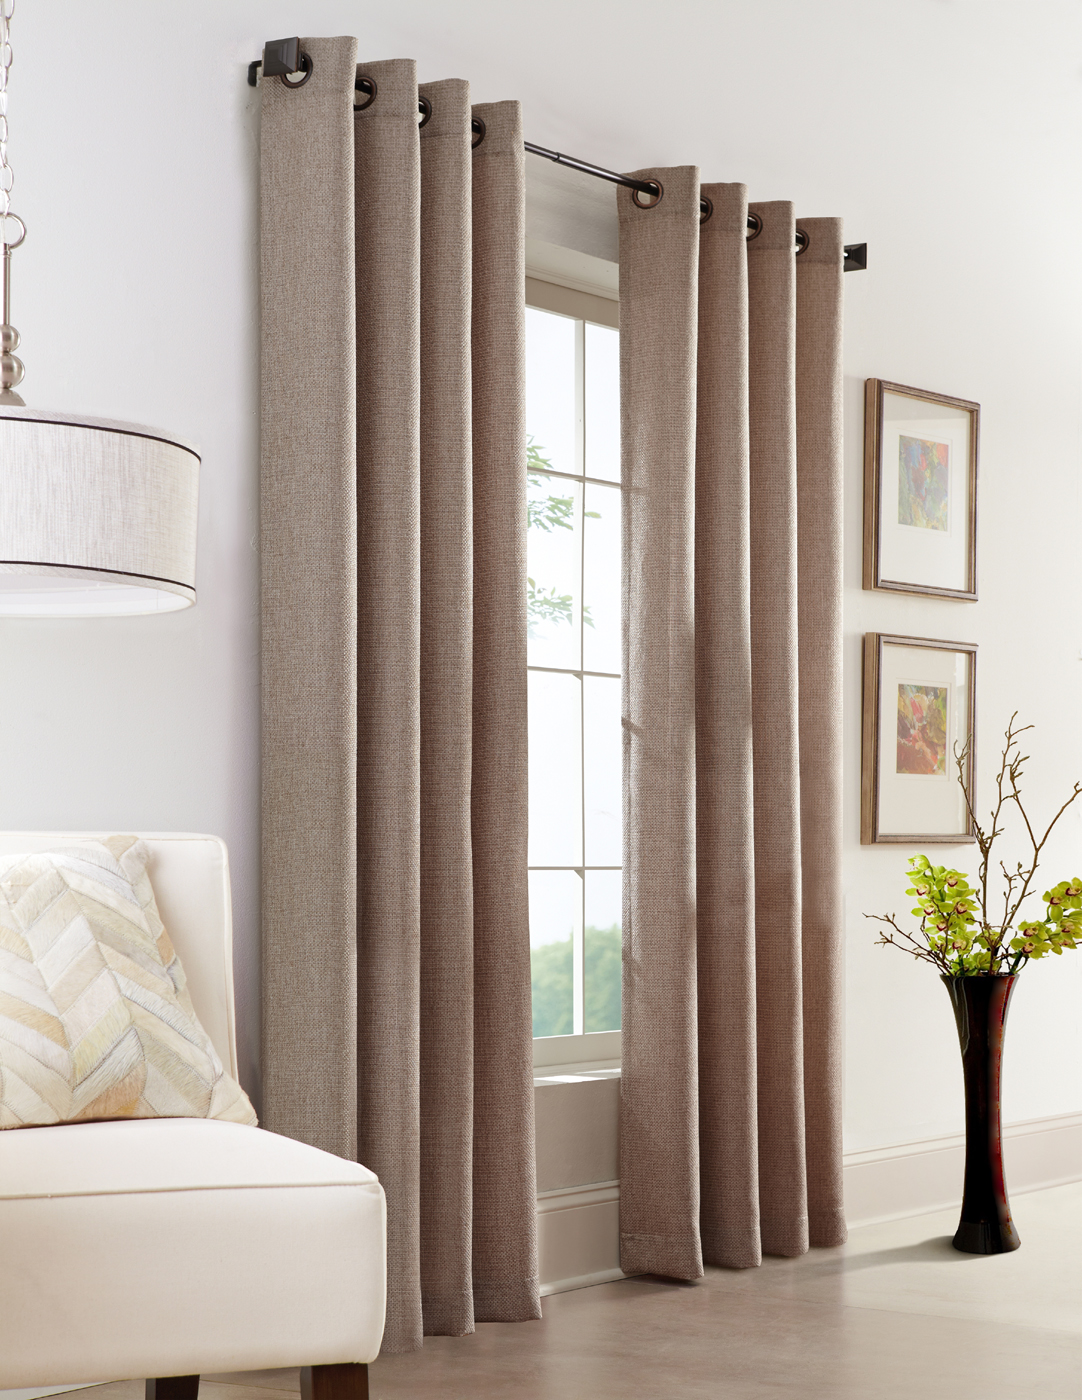 Curtain Panels For Sale Home The Honoroak